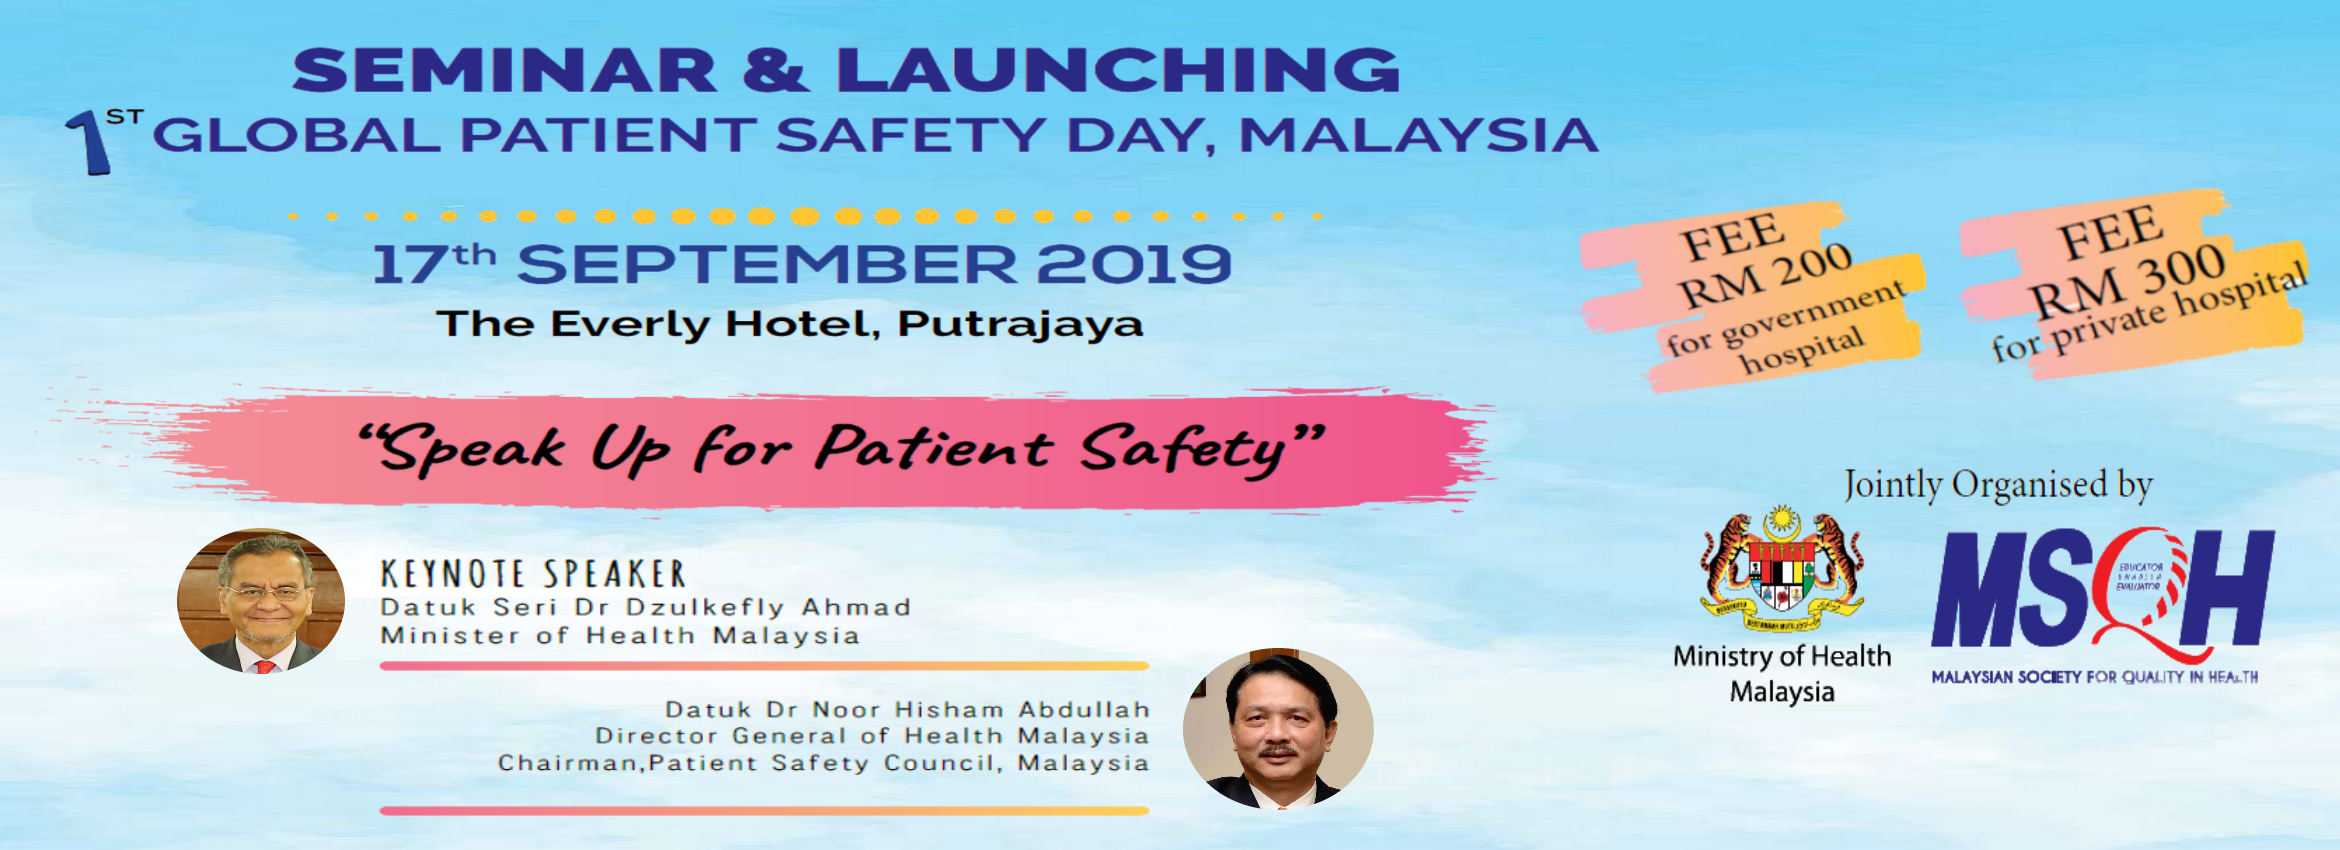 Global Patient Safety Day